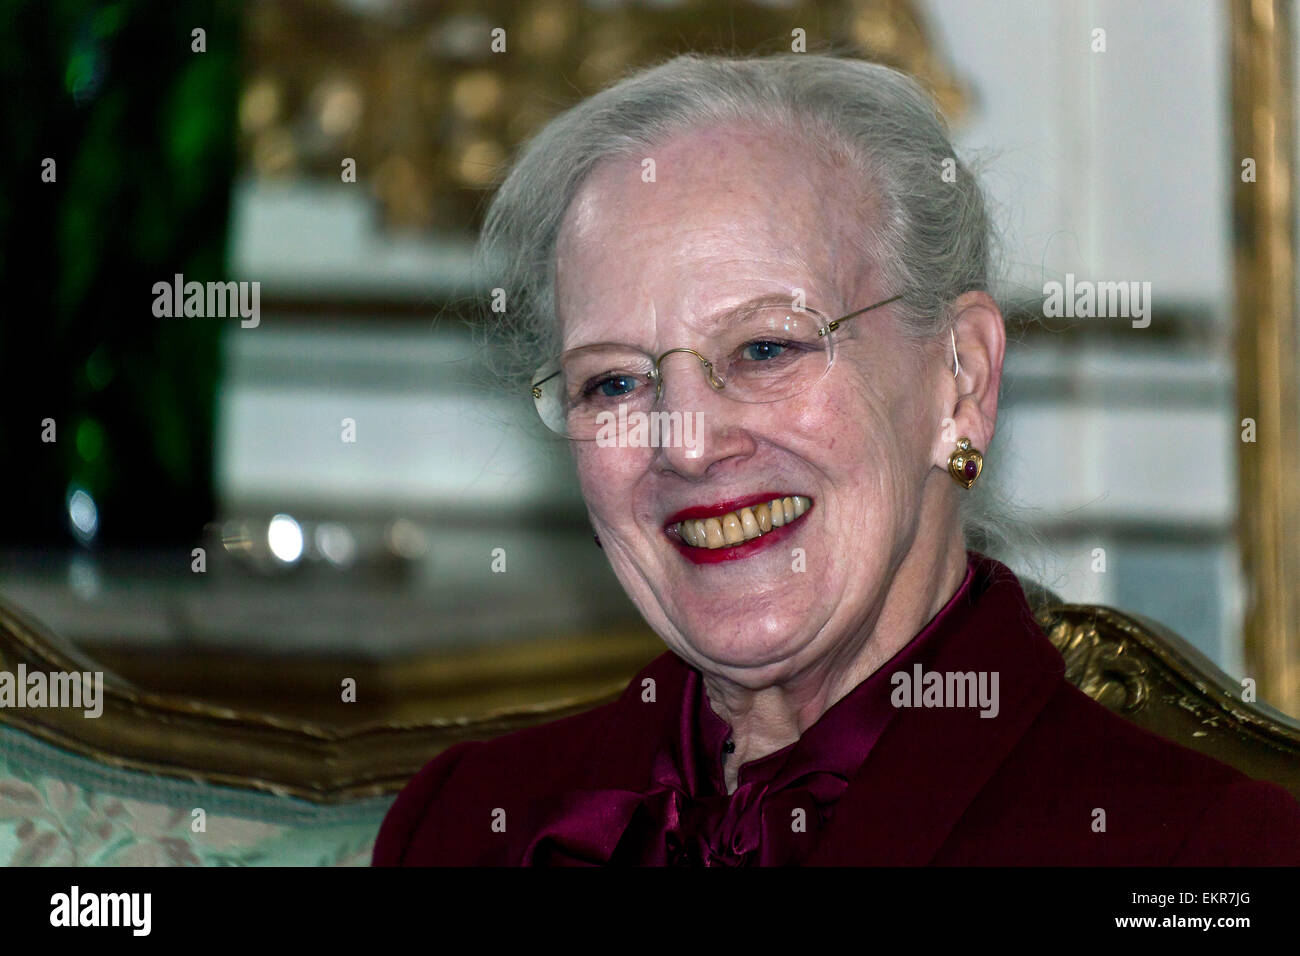 Fredensborg, Denmark. 13th April, 2015. H.M. Queen Margrethe of Denmark pictured at the press conference the Queen - Stock Image